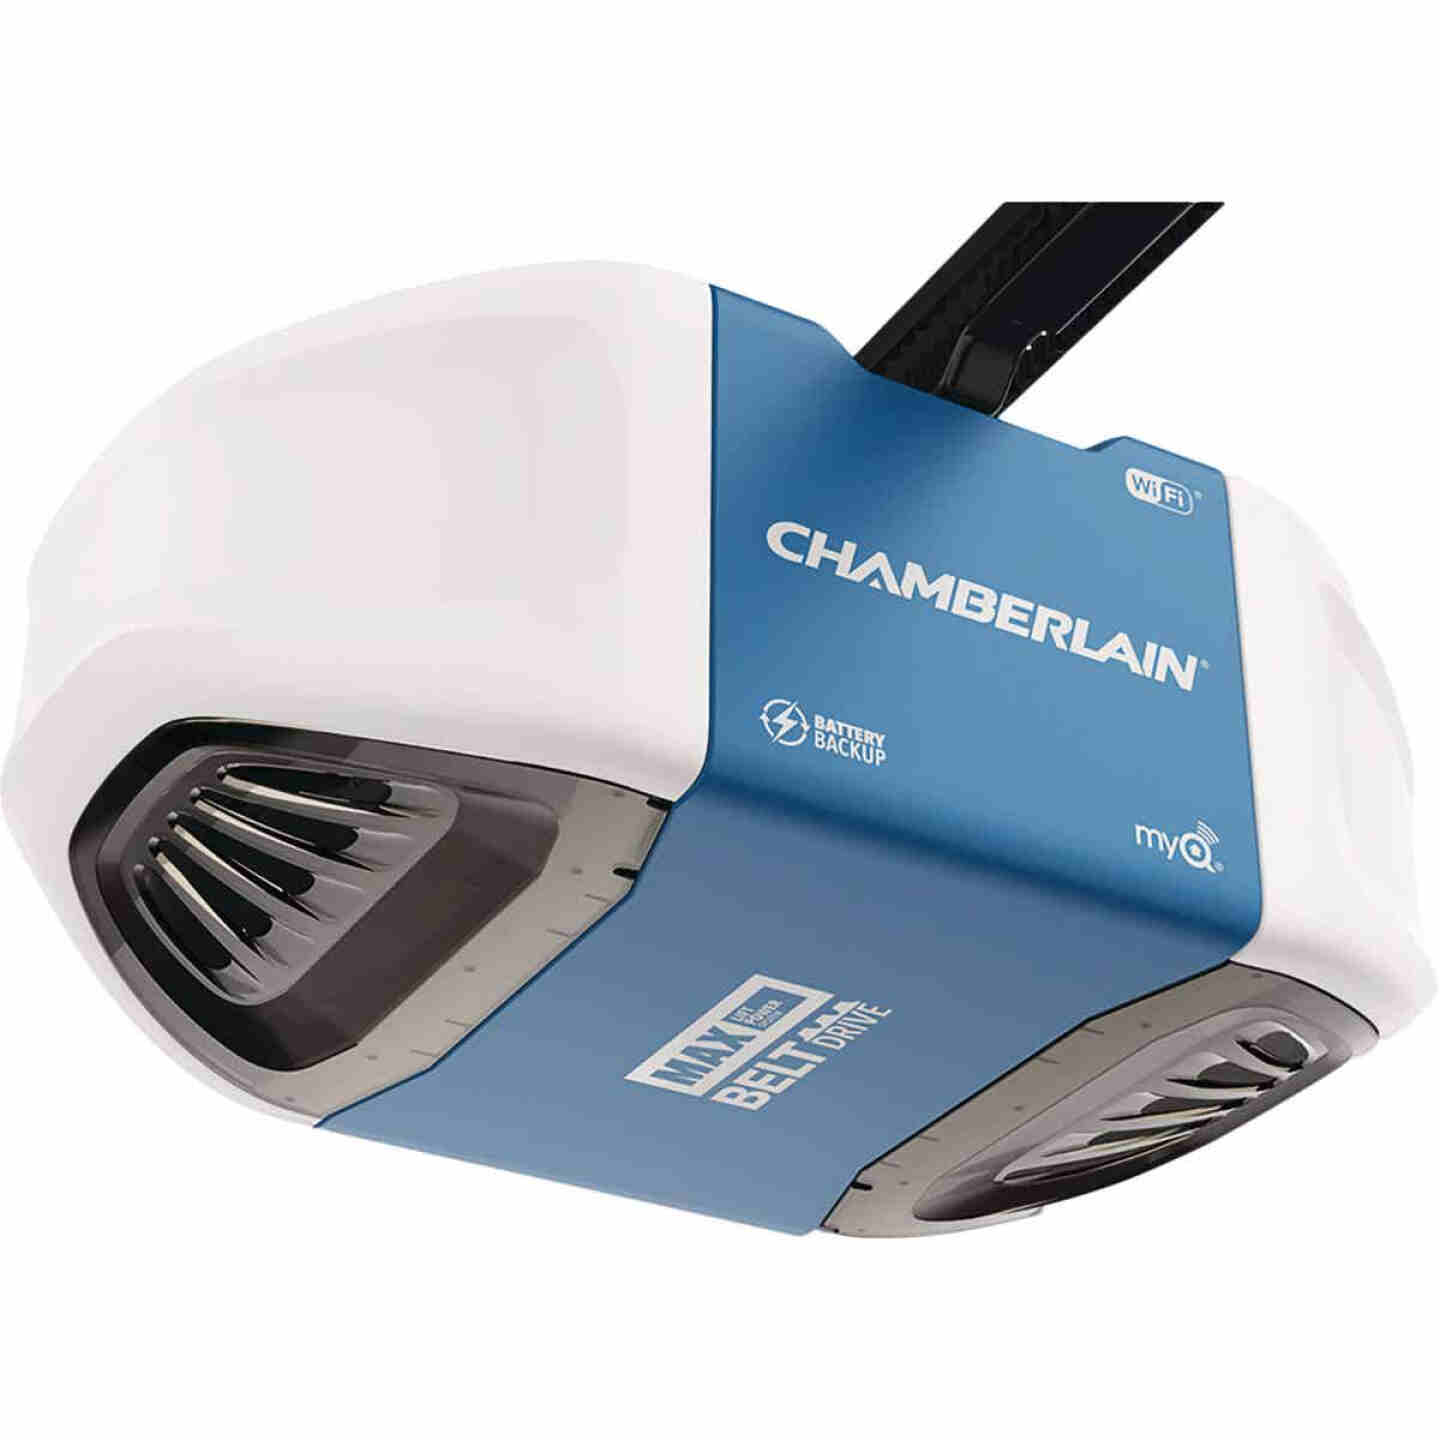 Chamberlain 1-1/4 HP Smartphone-Controlled Ultra-Quiet & Strong Belt Drive Garage Door Opener with Built-In WiFi, Battery Backup and MAX Lifting Power Image 3